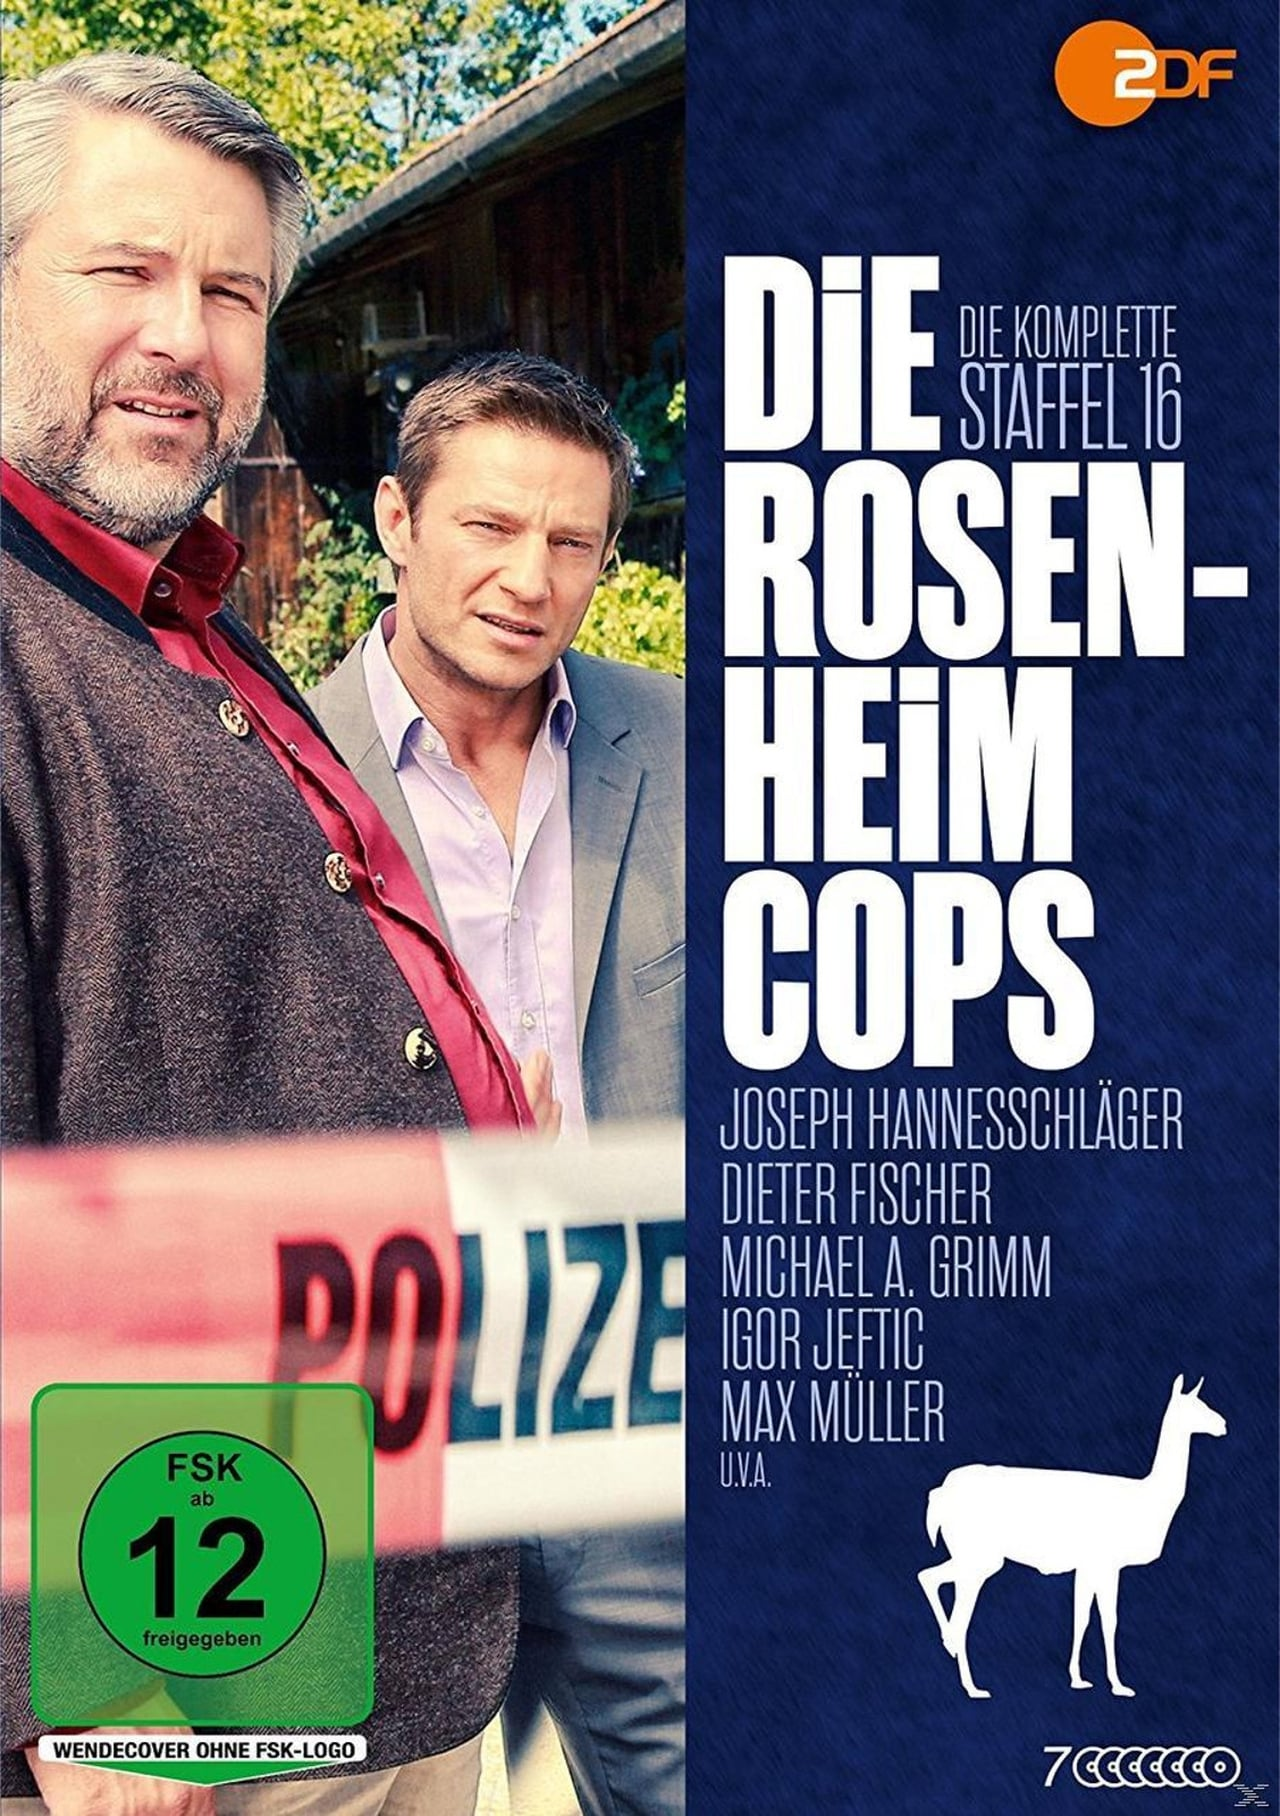 Watch The Rosenheim Cops Season 16 Online